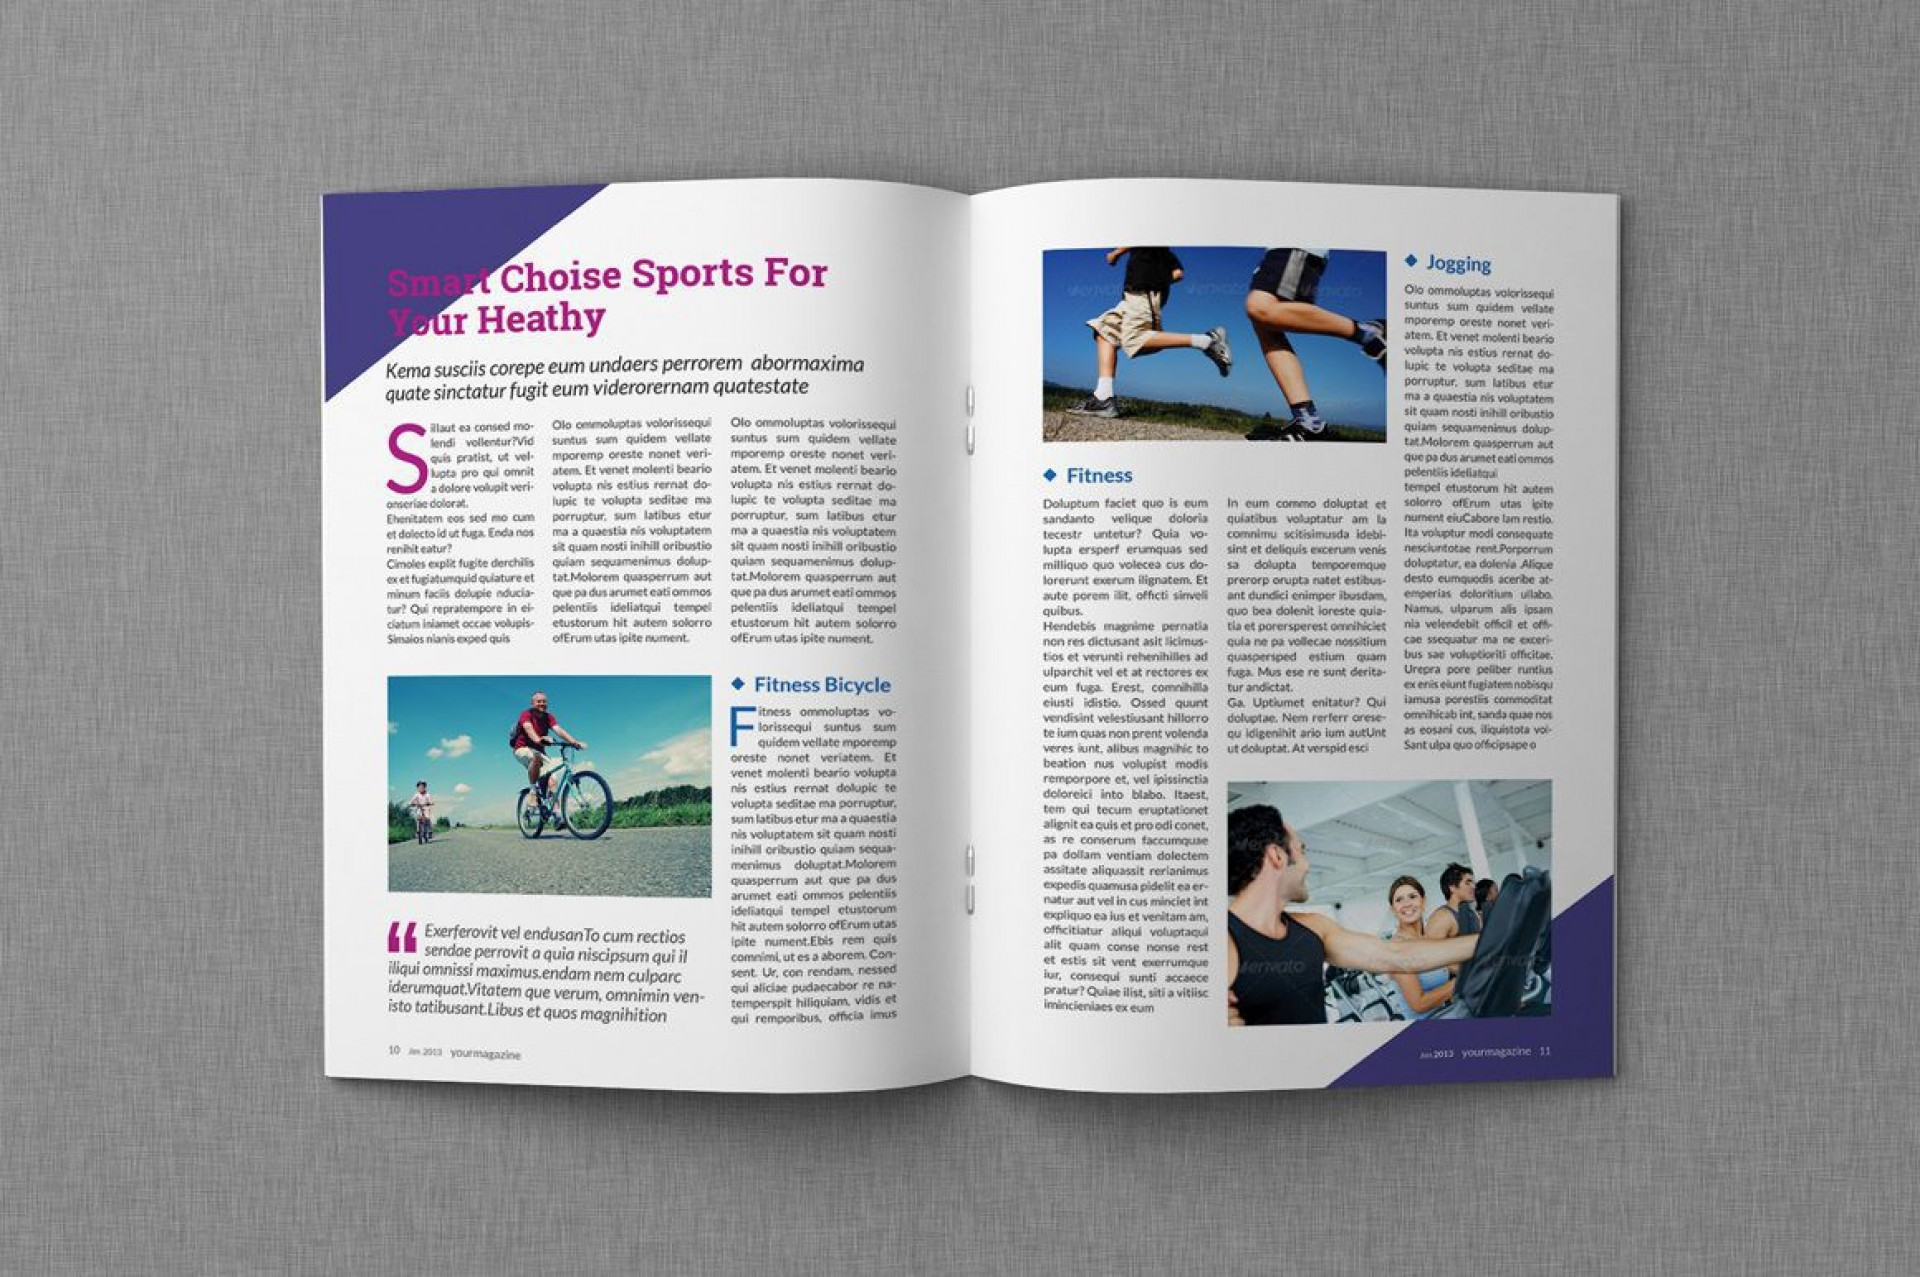 009 Archaicawful Free Magazine Article Layout Template For Word Highest Clarity 1920